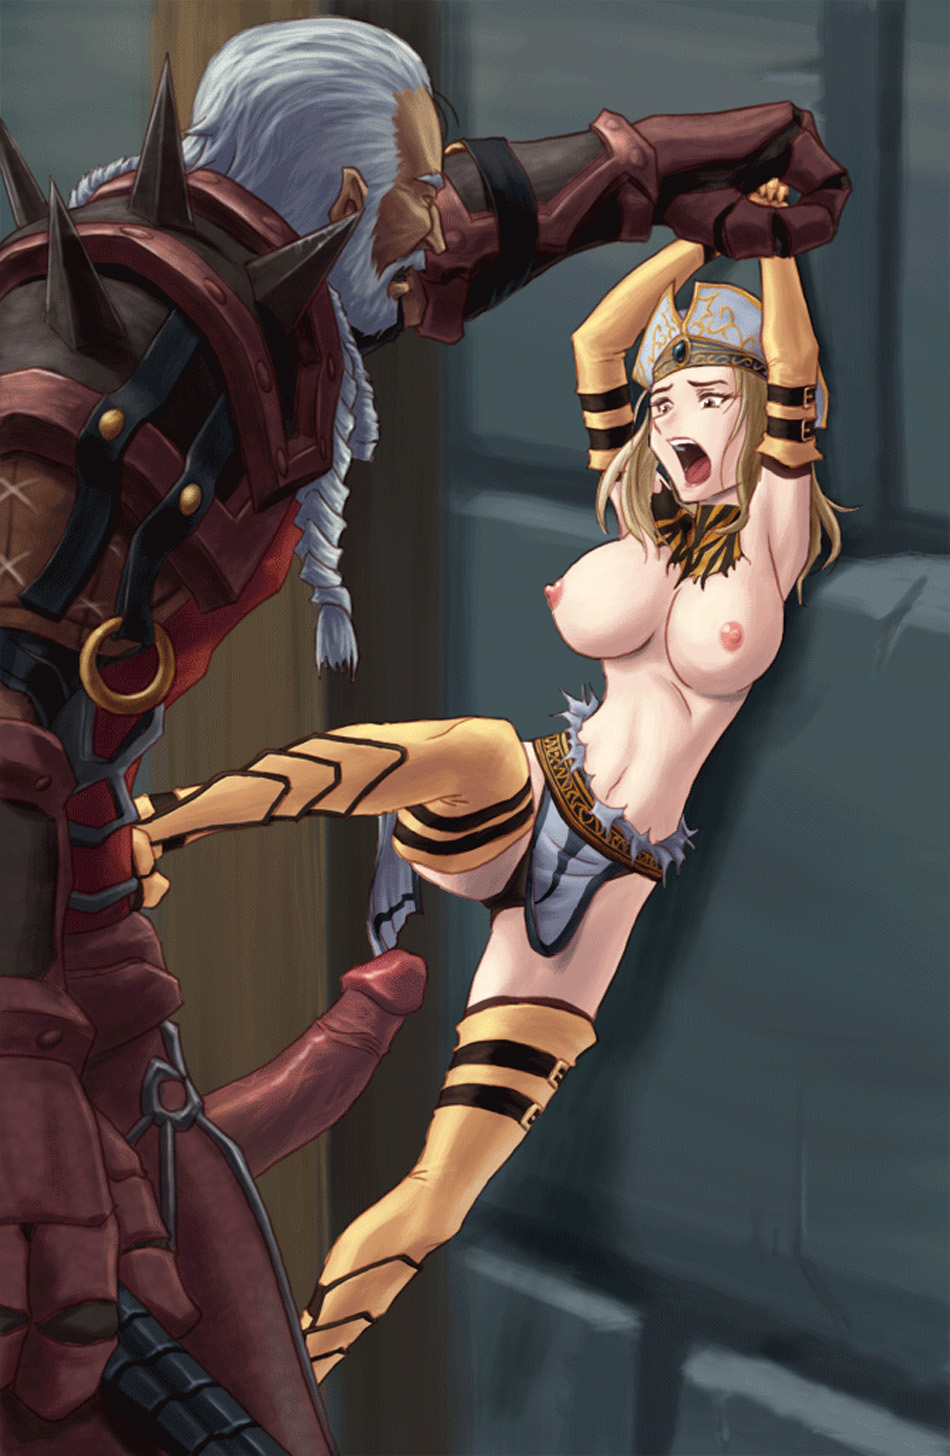 World of warcraft hentai whitemane nsfw reality sexgirls